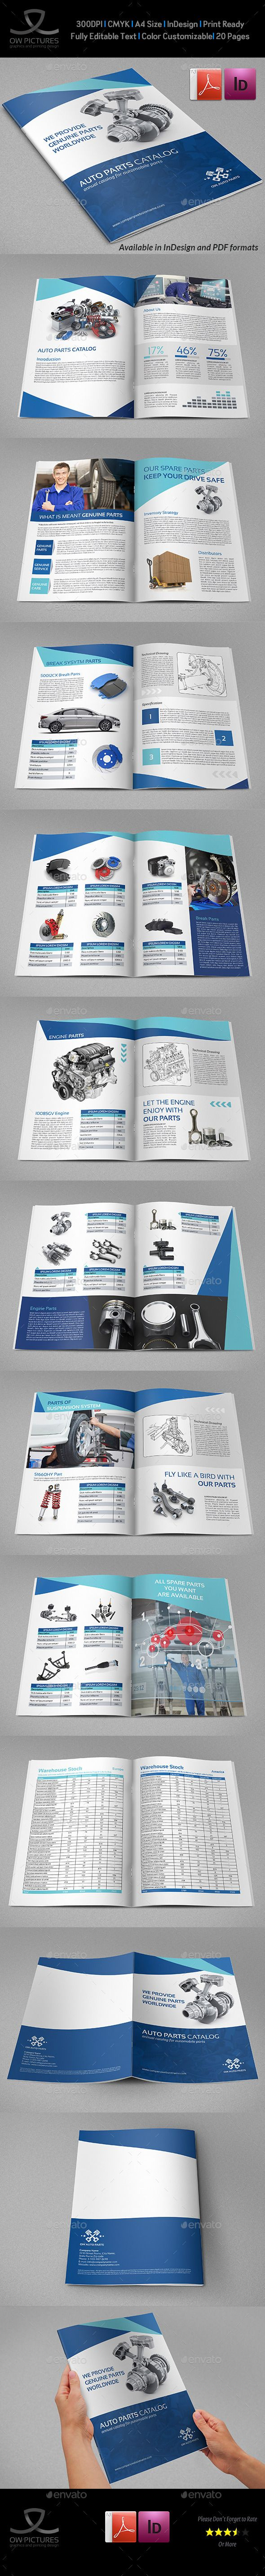 Auto Parts Catalog Brochure Template - 20 Pages Template #design Download: http://graphicriver.net/item/auto-parts-catalog-brochure-template-20-pages/13183387?ref=ksioks